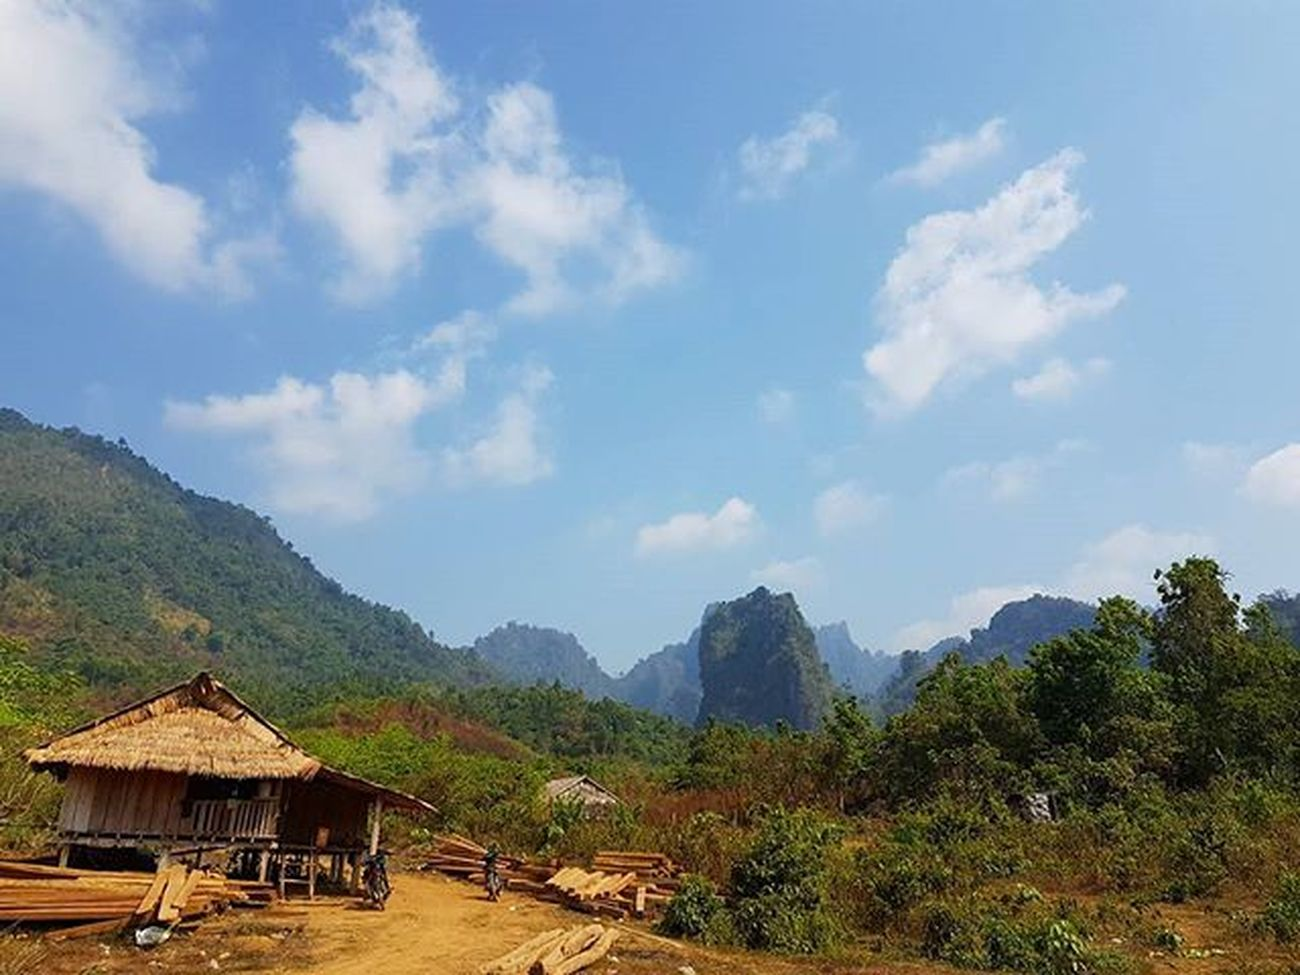 Breathtaking Scenery of Kayin State Camera - Samsung Galaxy S7 Edge Igersmyanmar Myanmar Burma Kayin Kayinstate Mountains Stonemountain Nature Beautifulmyanmar Instagood Mobilephotography GalaxyS7Edge Photography Photooftheday Sky Asiaonetravelsnaps Photooftheweek Instagram AOV Artofvisuals Choose2create Alphahype Yourworldgallery Travelgood Vacationinstyle breathtaking scenery meistershots